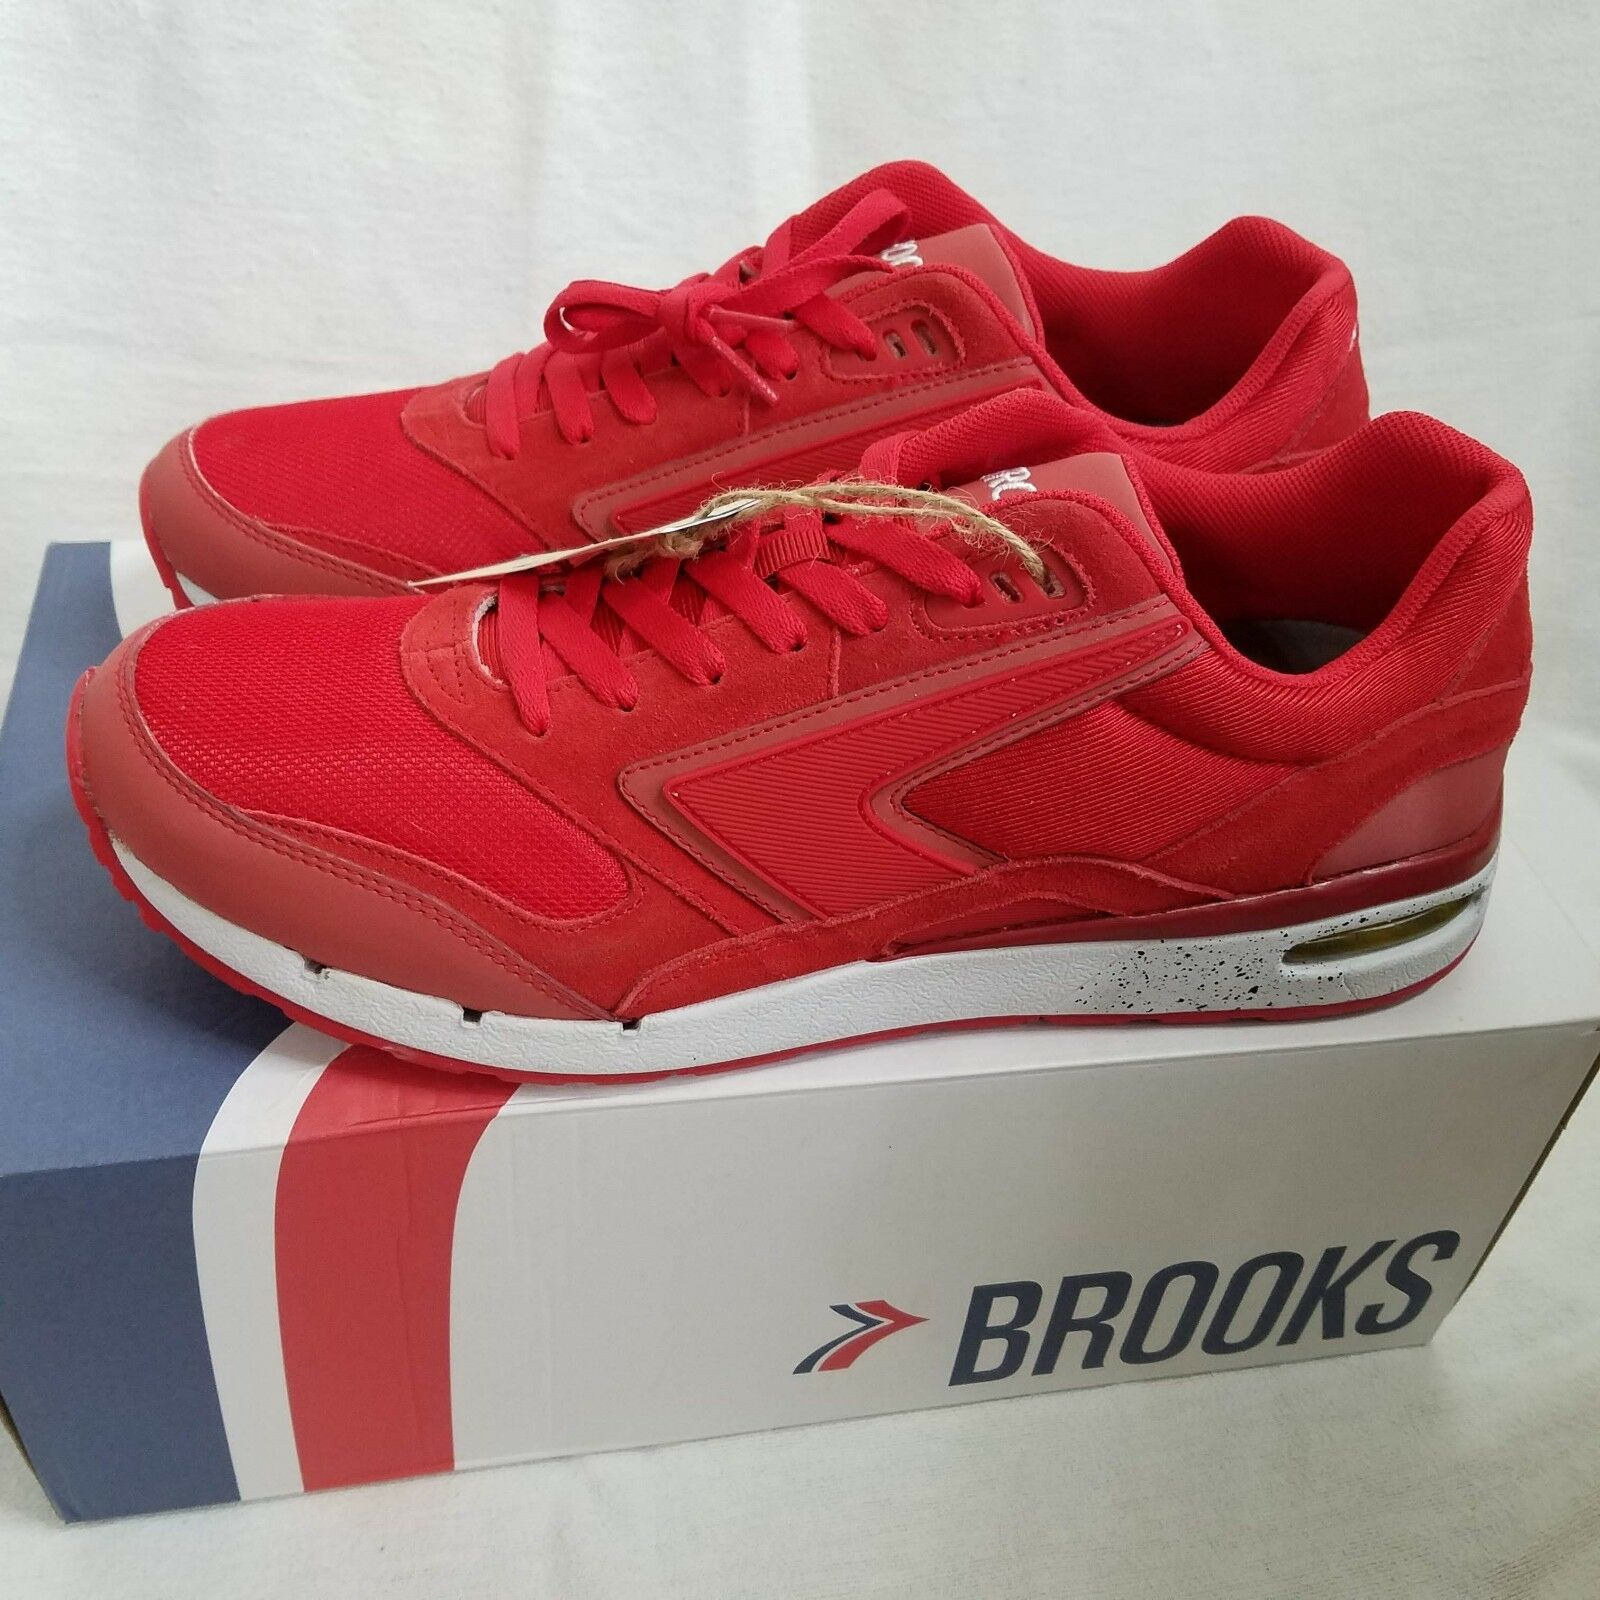 Brooks Mens Fusion Red   Red Reflective Casual Running shoes Size 12 MSRP  109.99